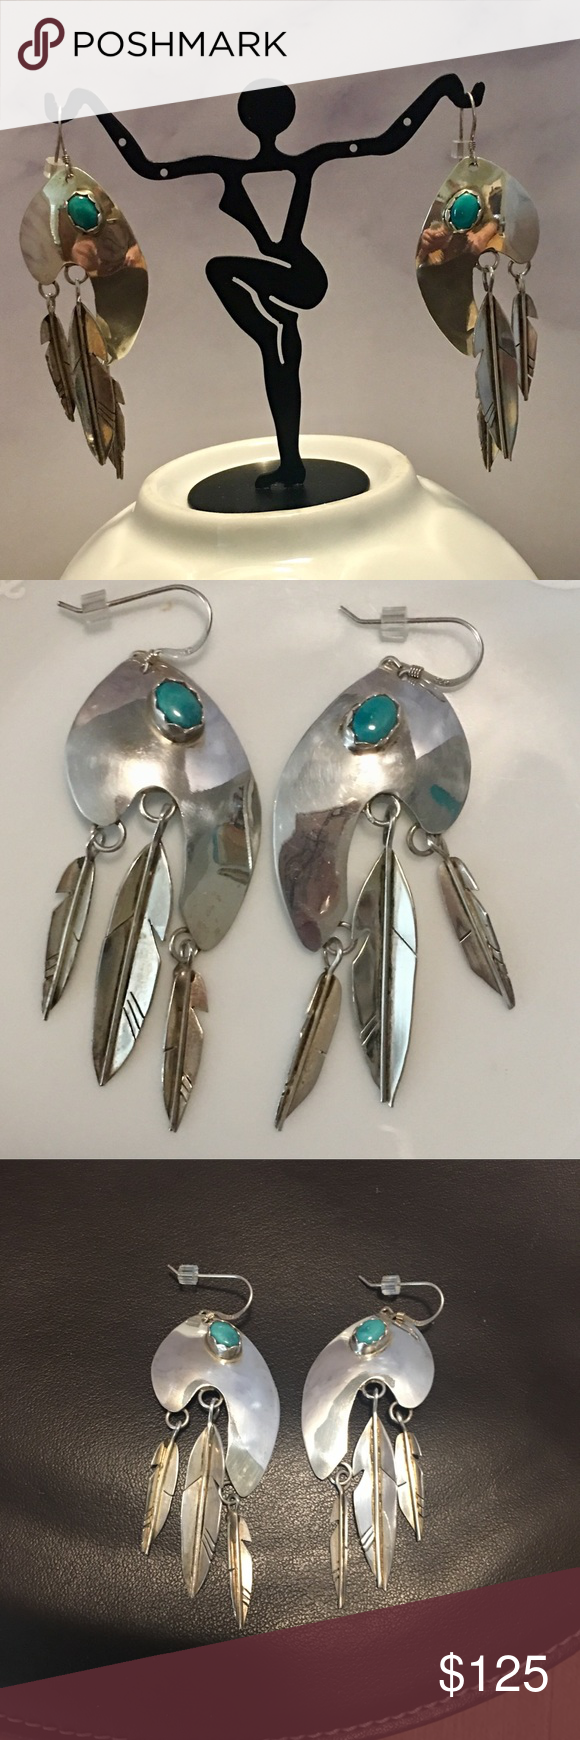 Vintage Sterling Silver &Turquoise Earrings